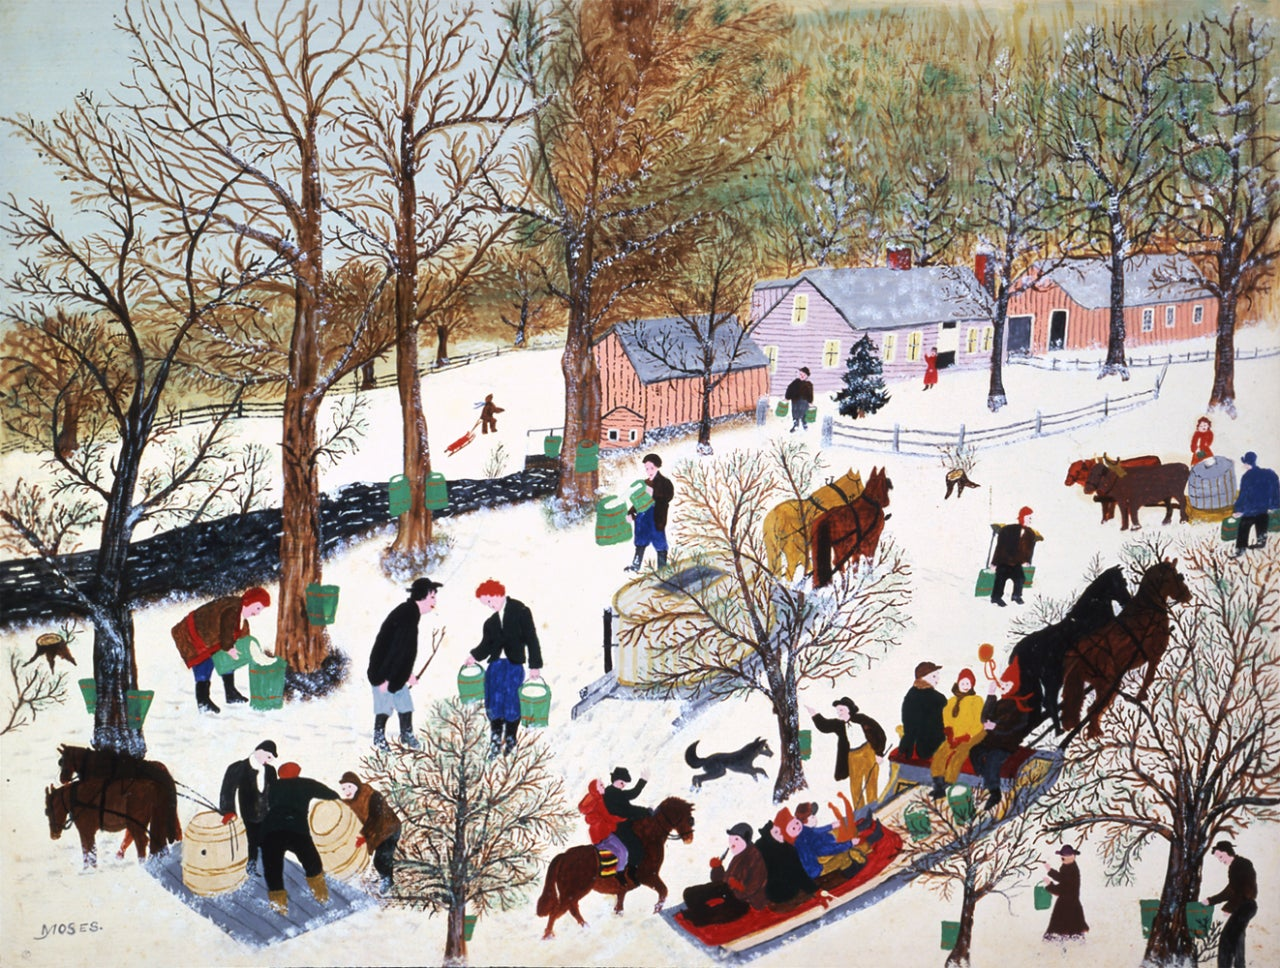 Grandma Moses - At The ADAA Art Show - Last Run of Sap, Painting at 1stdibs